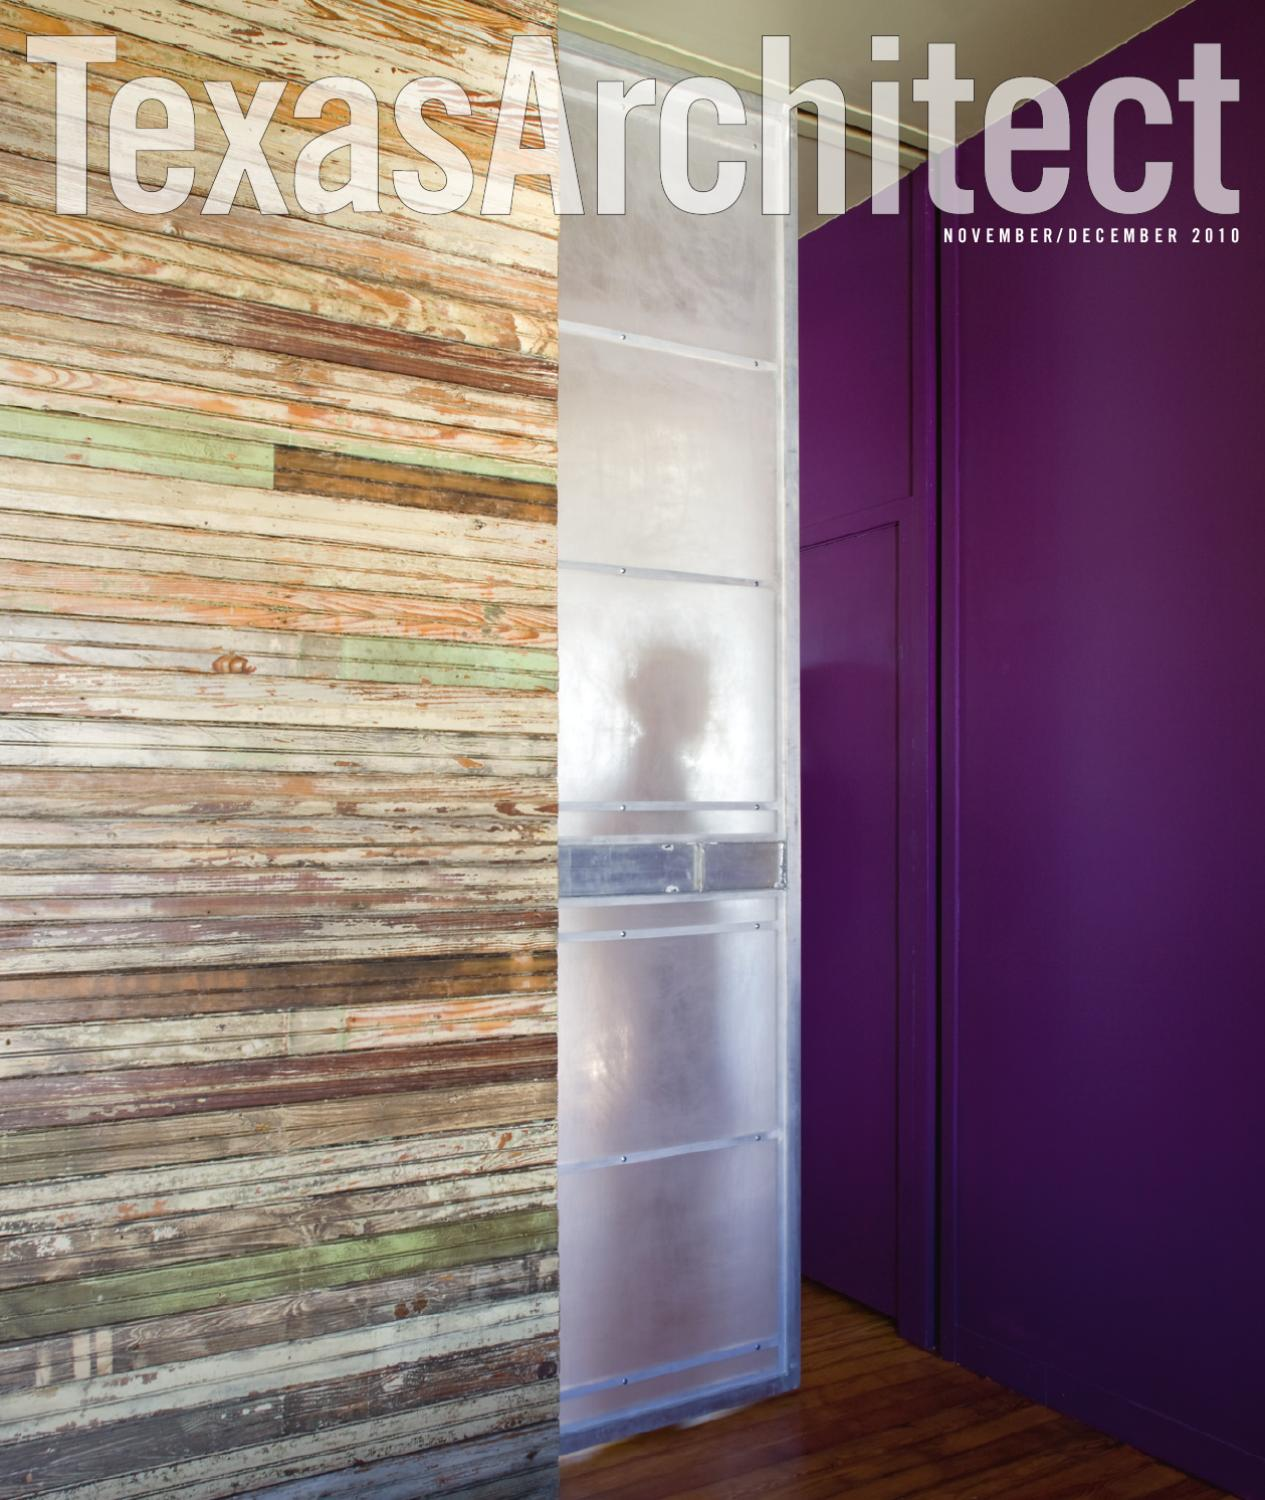 Dfa Proposes An Unsinkable Mixed Use Complex For The: Texas Architect Nov/Dec 2010: Mixed-Use By Texas Society